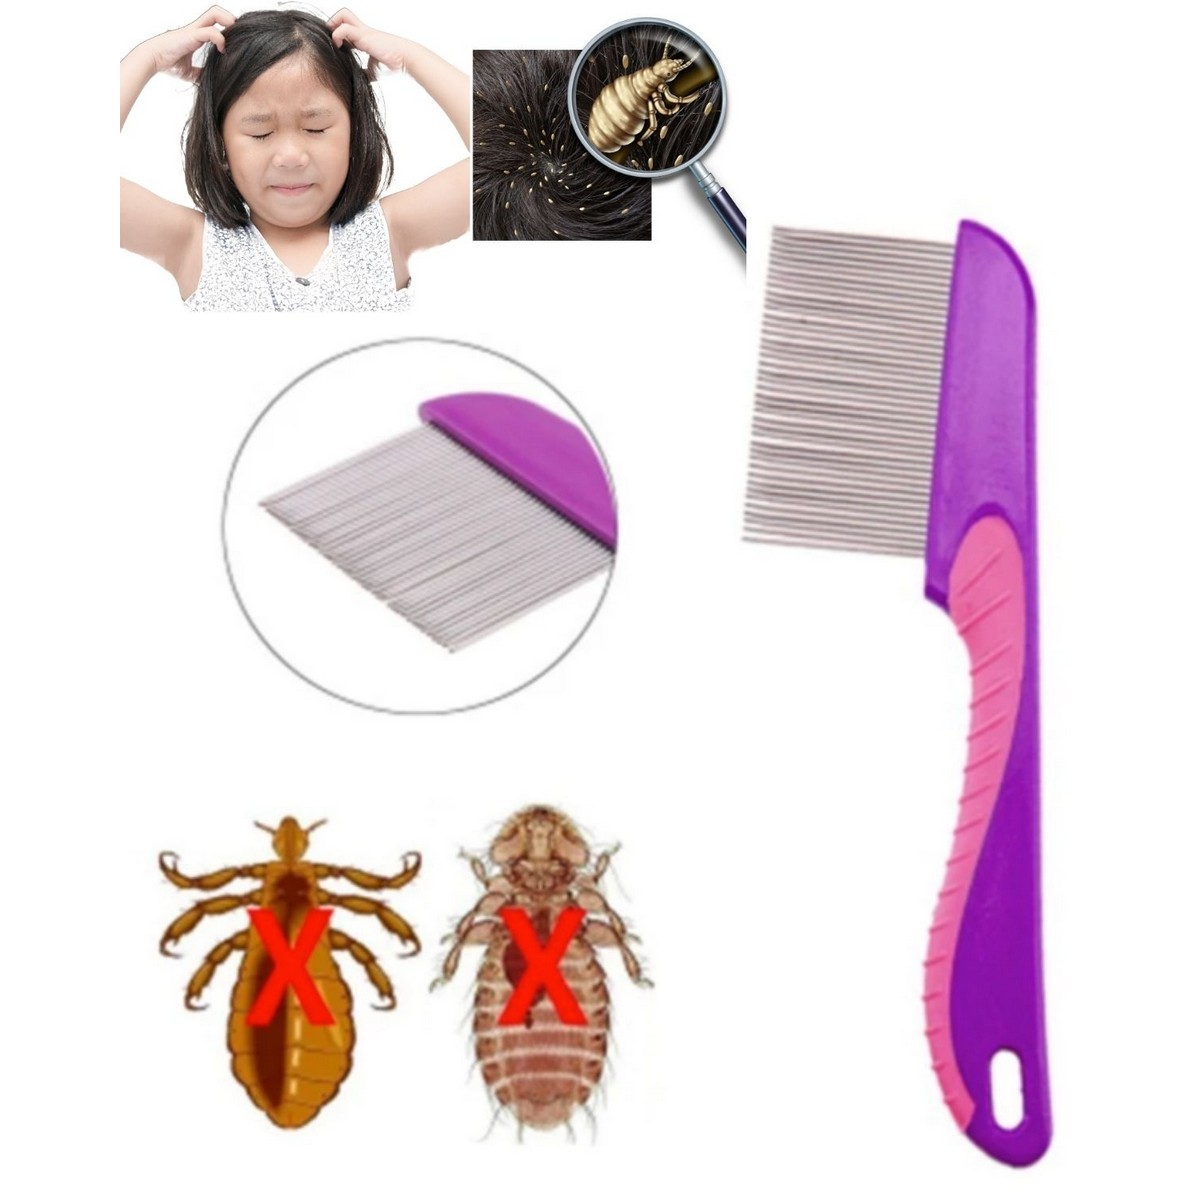 Anti Lice Comb & Nit Comb With Handle Stainless Steel for men women